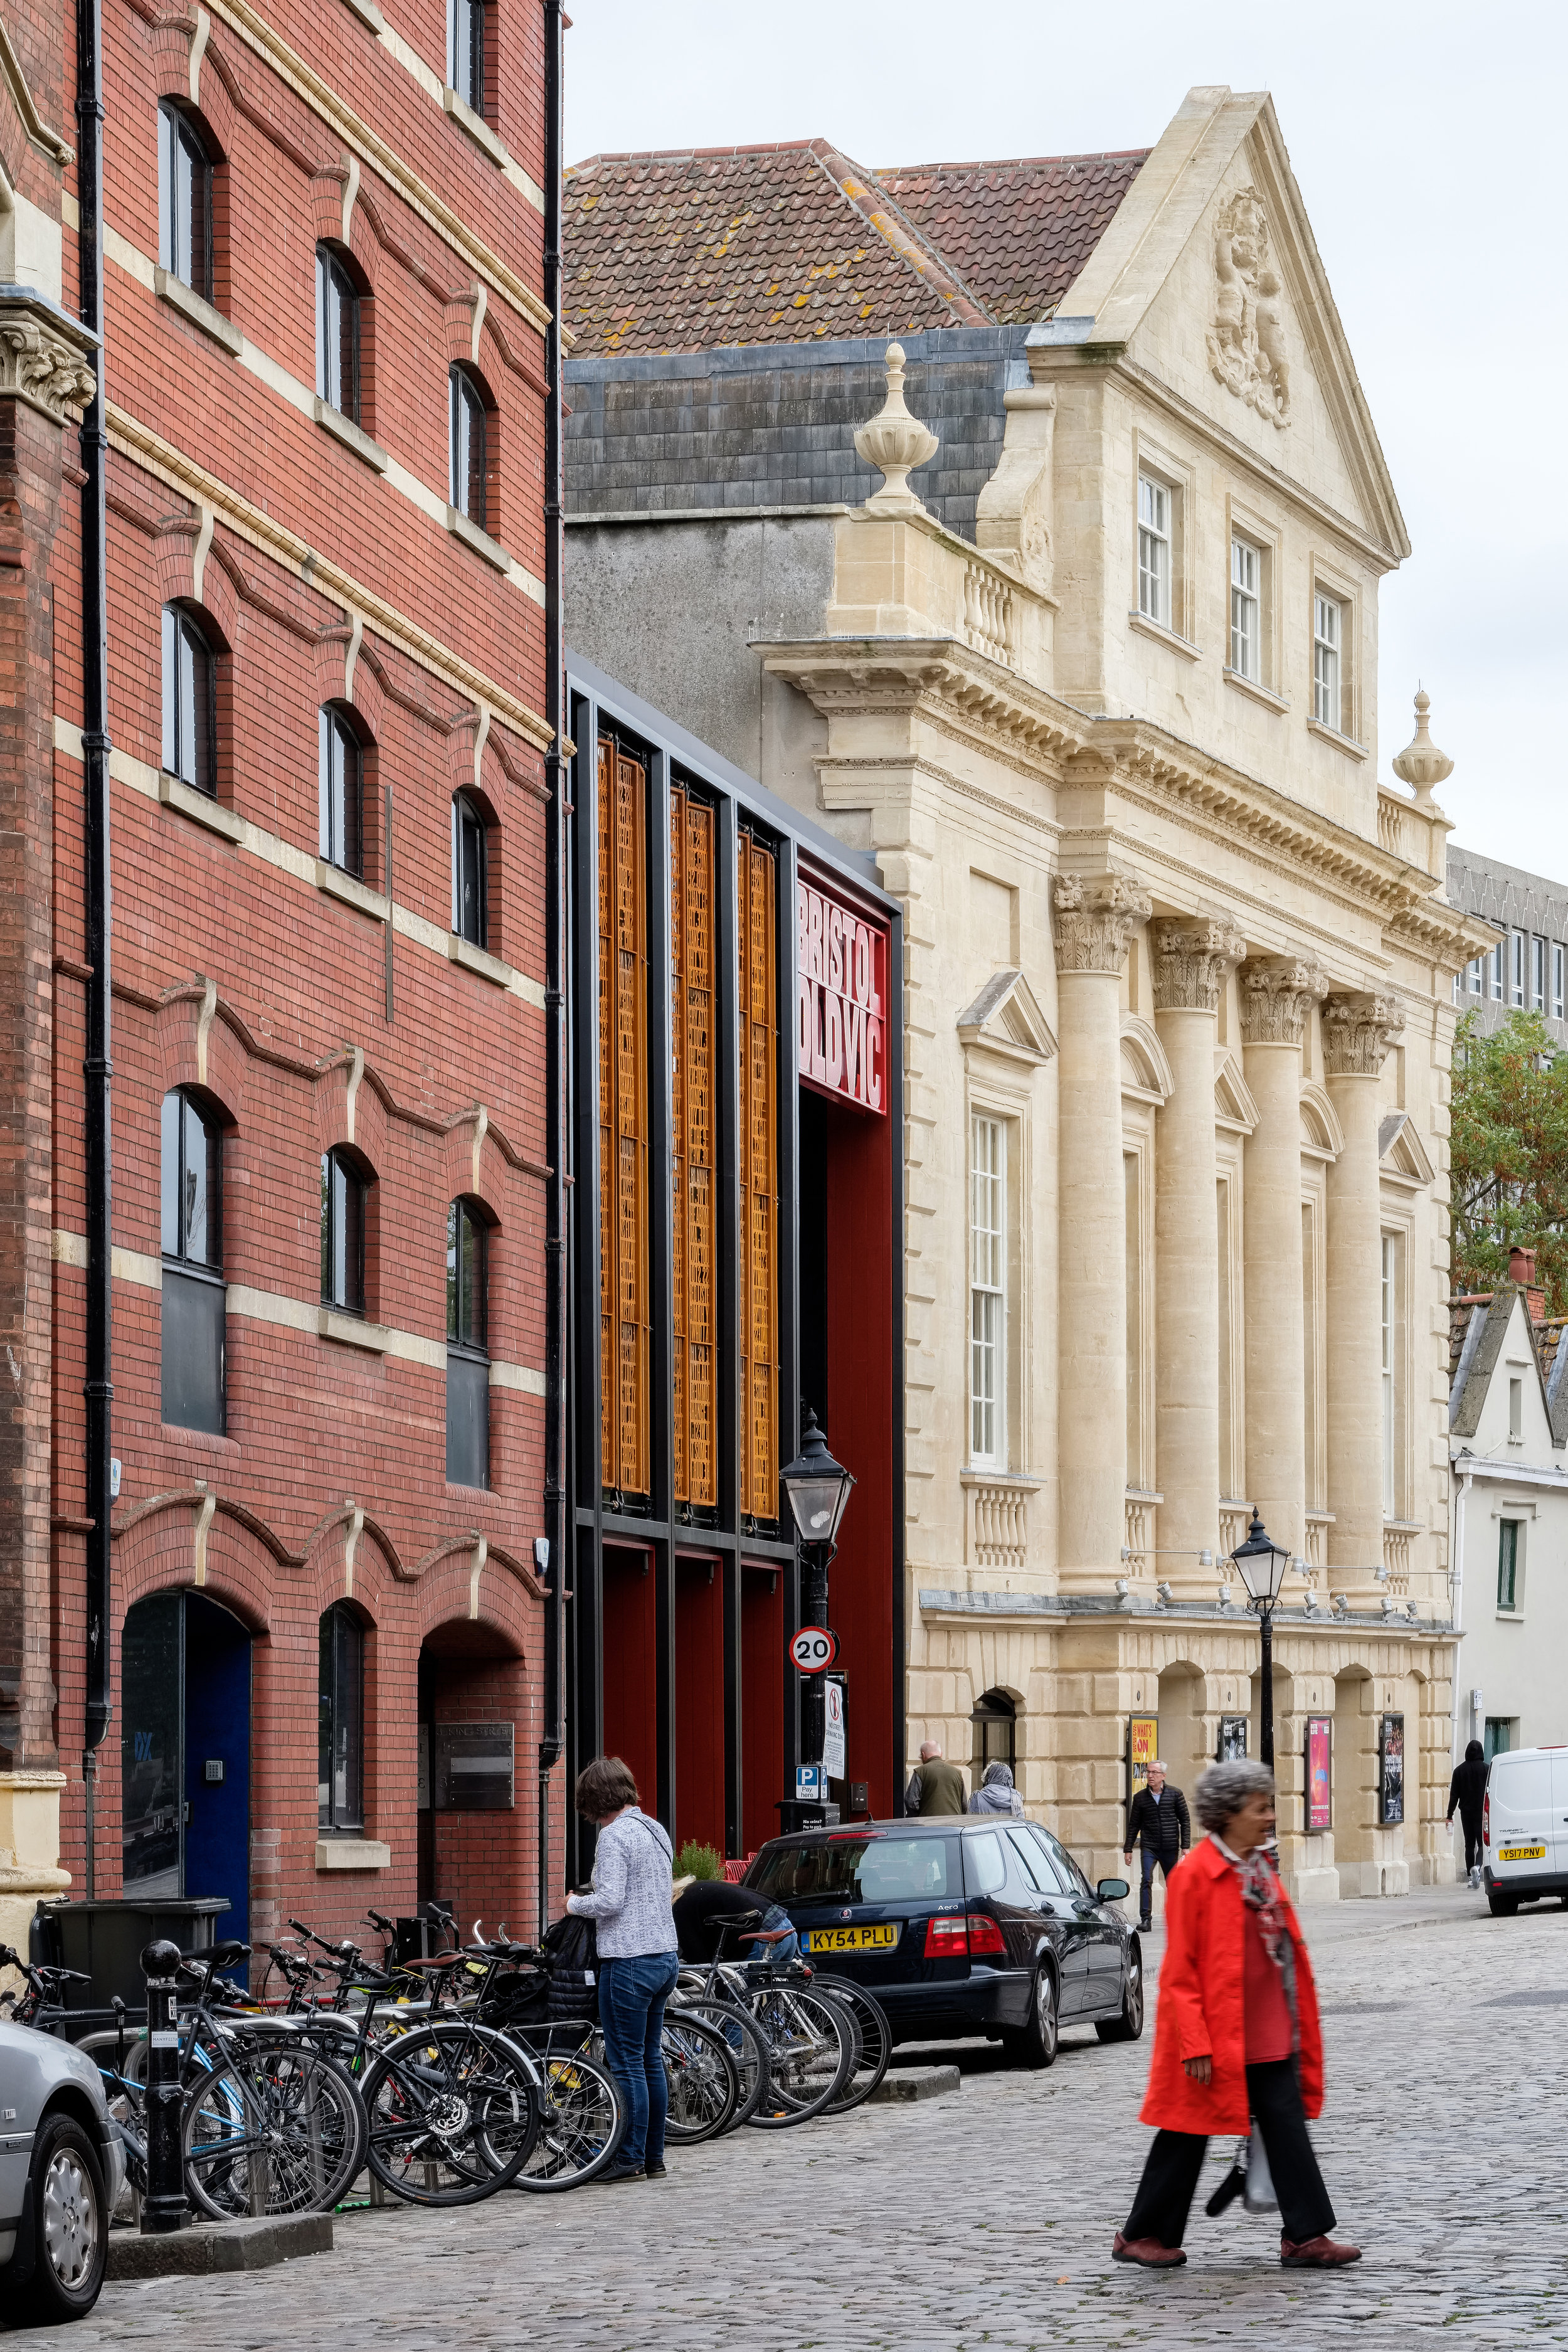 Fred+Howarth+Photography_Bristol+Old+Vic_02.jpg